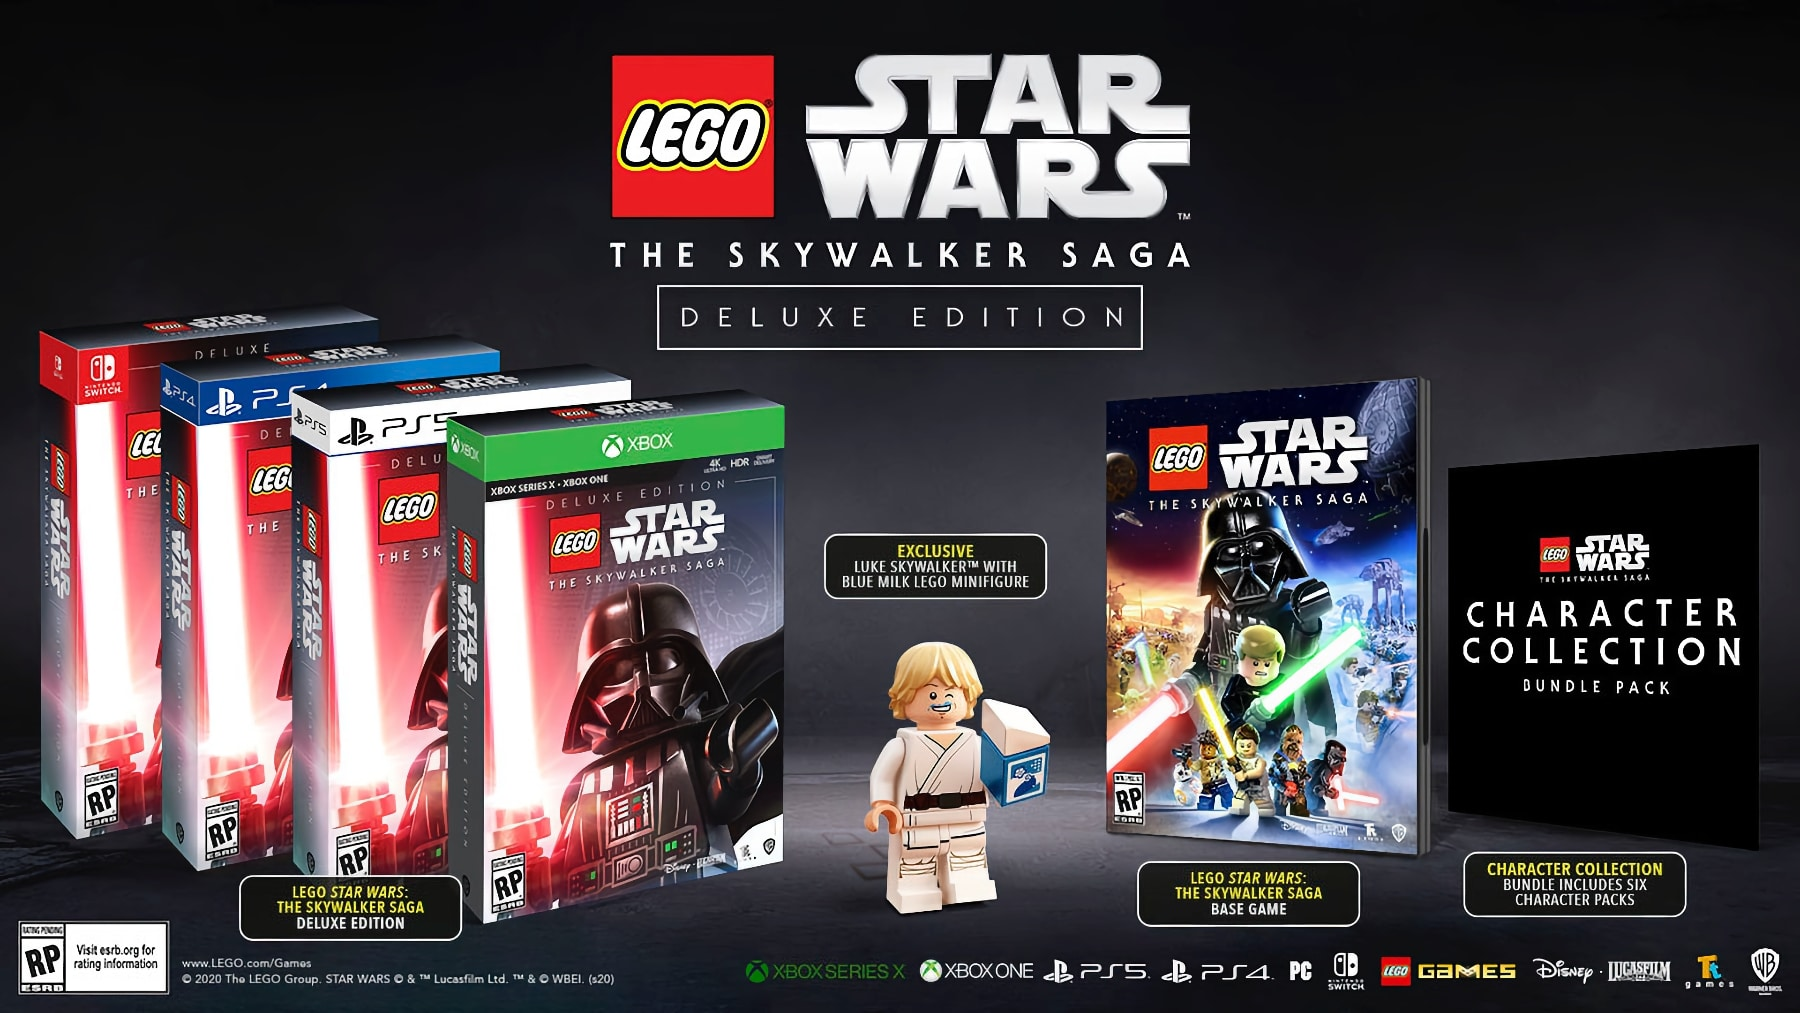 LEGO Star Wars Die Skywalker Saga Deluxe